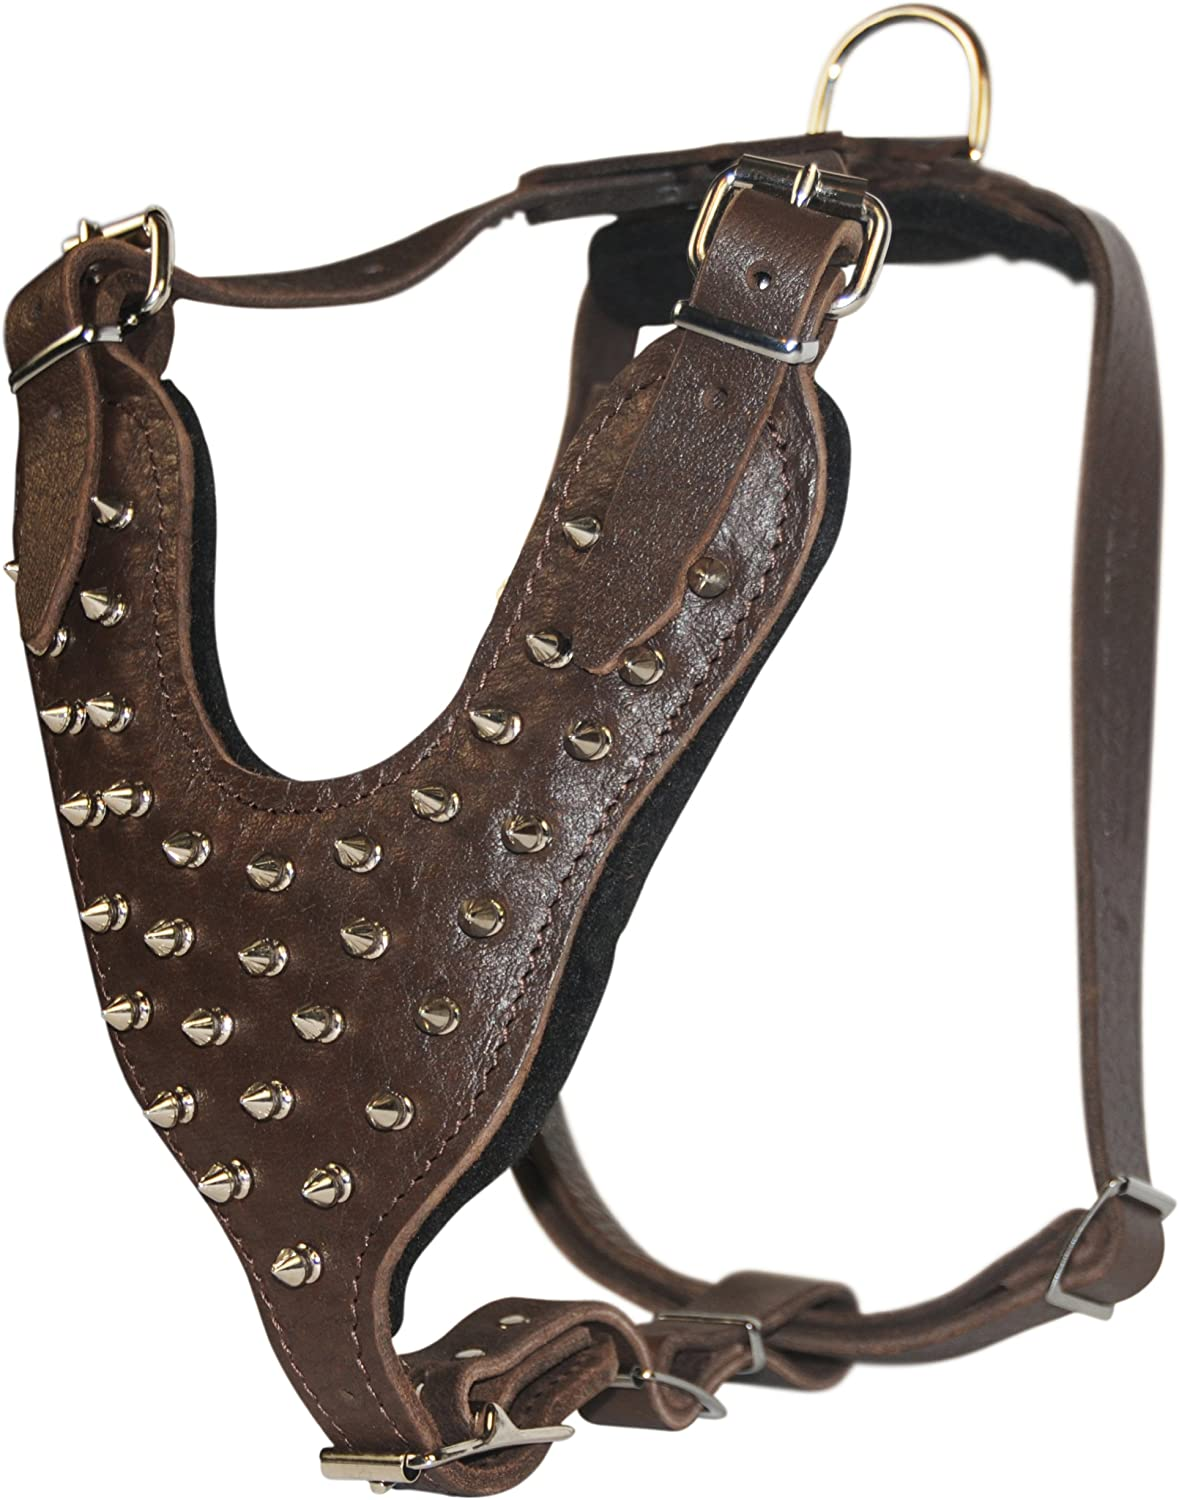 Dean and Tyler The Blade with Handle Nickel Hardware Leather Dog Harness, Brown, Large  Fits Girth Size  22Inch to 36Inch